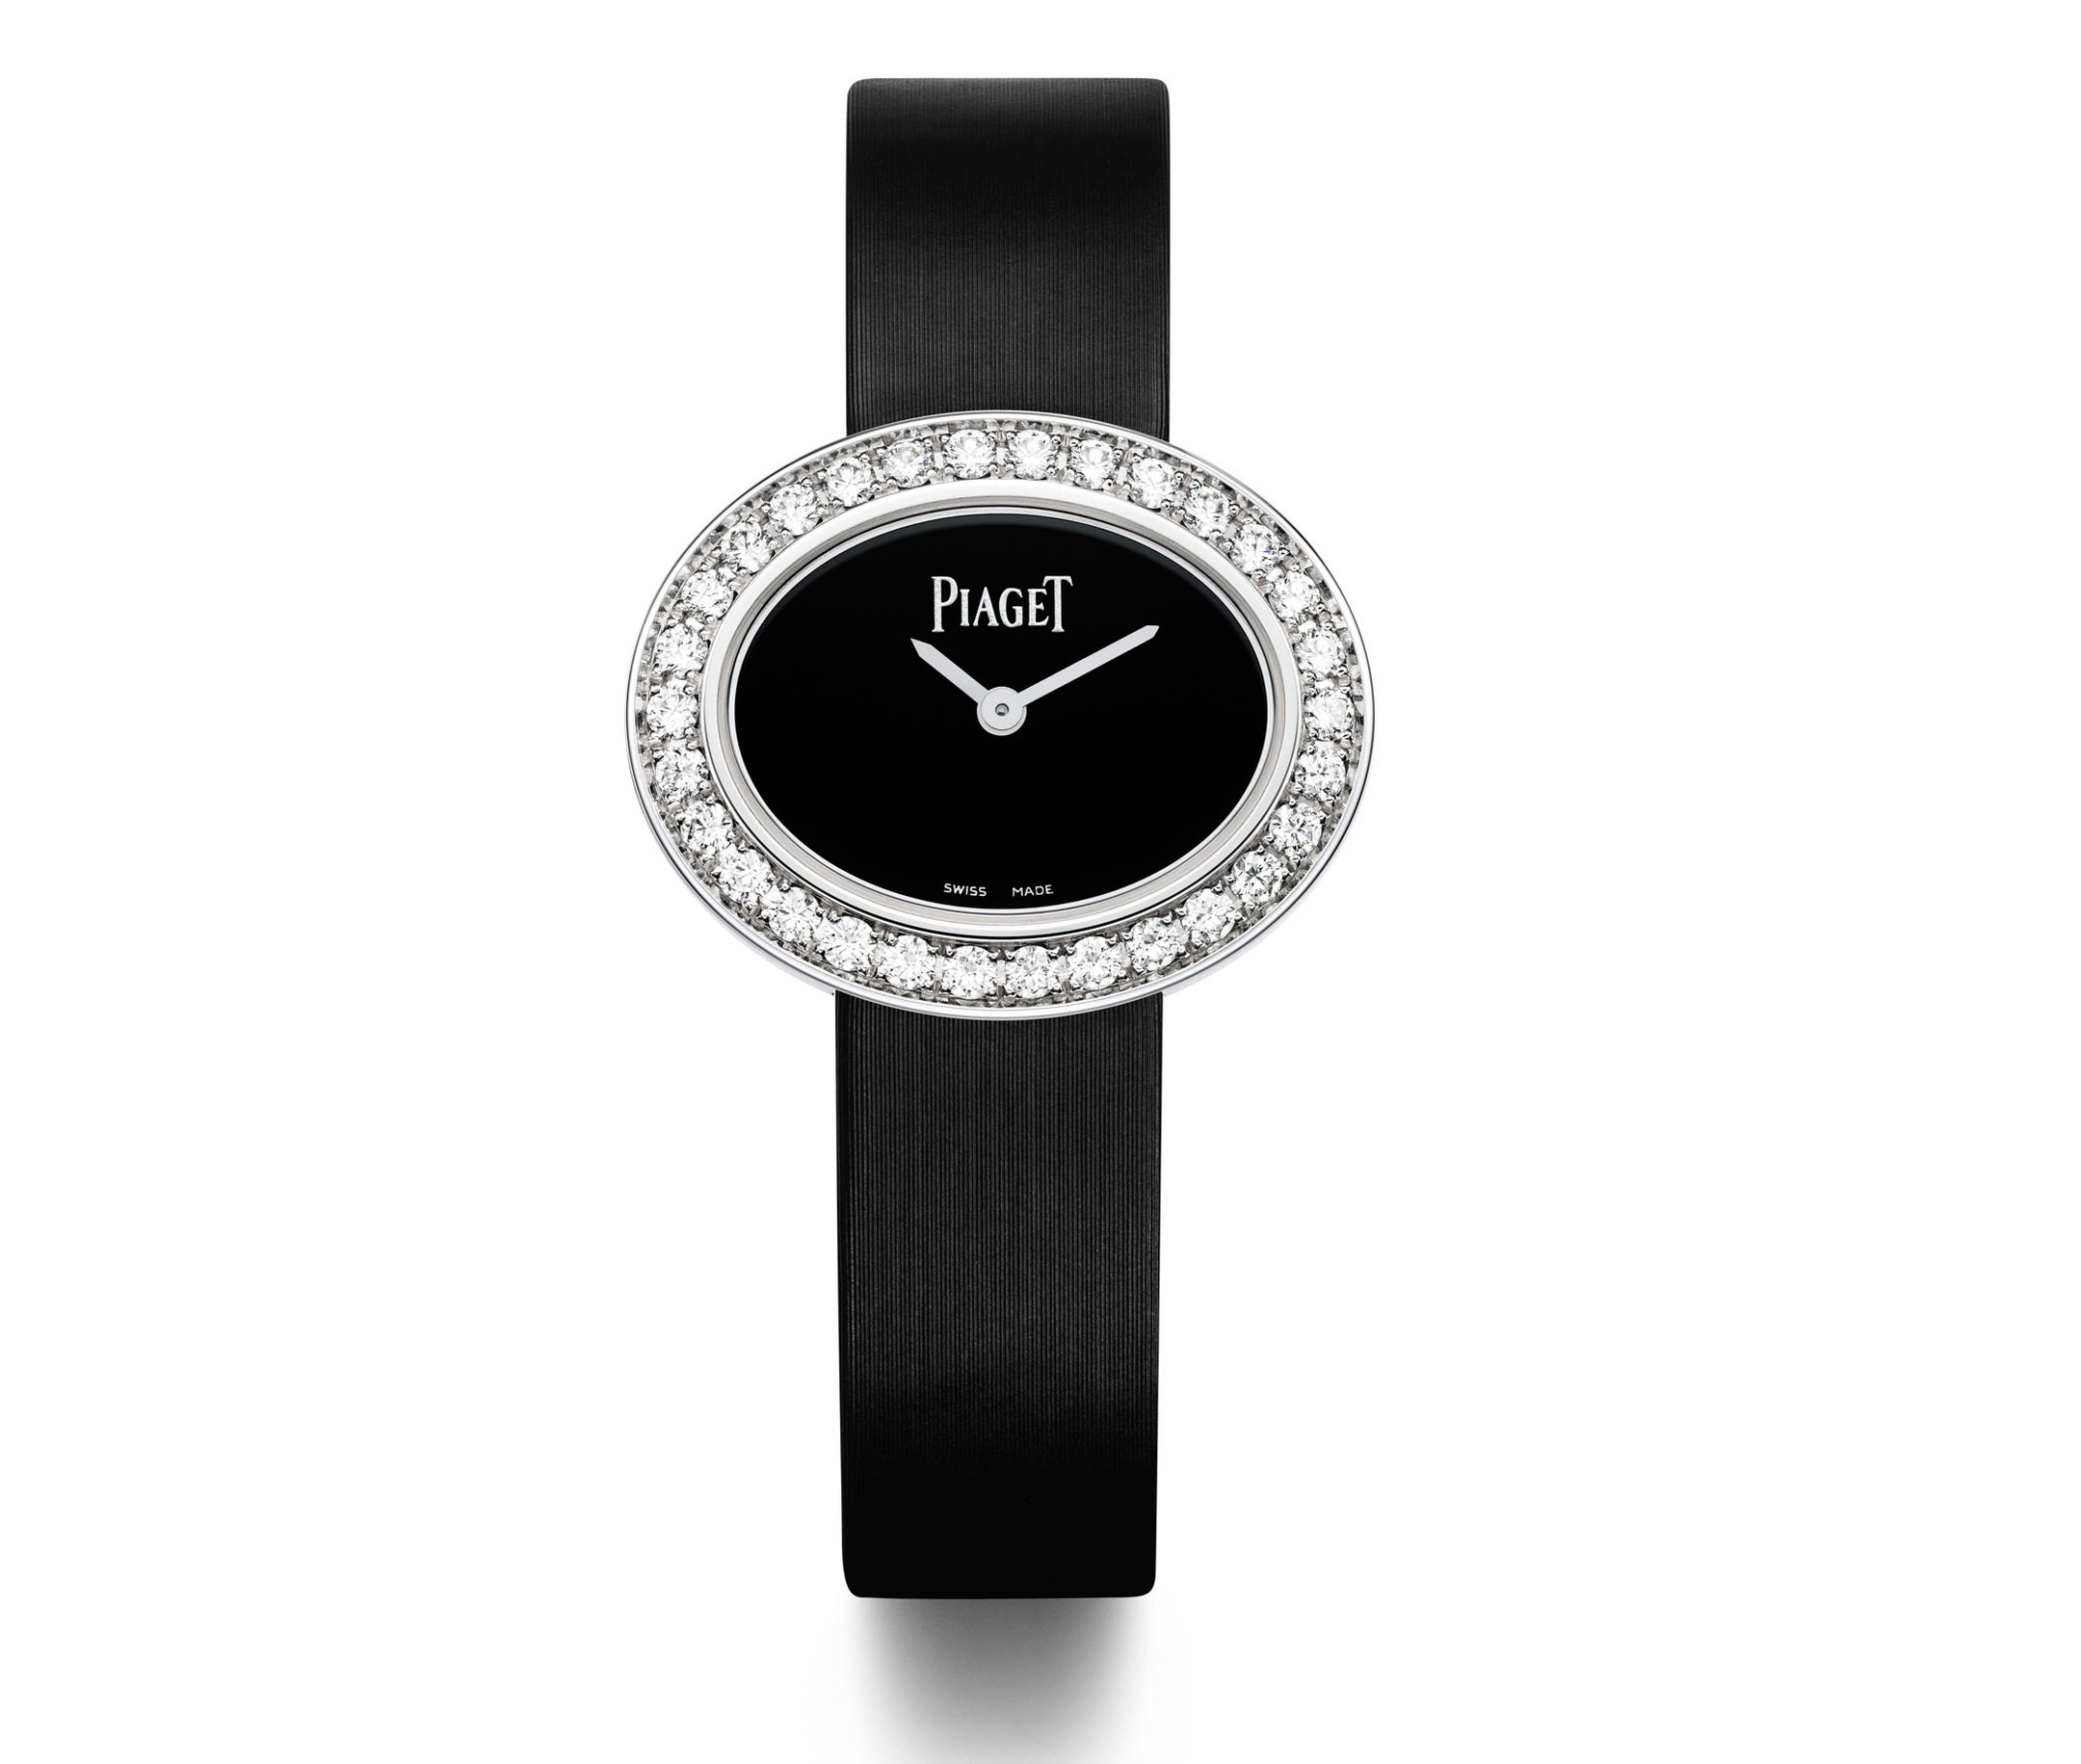 Piaget-Limelight-Oval-Black-Zoom